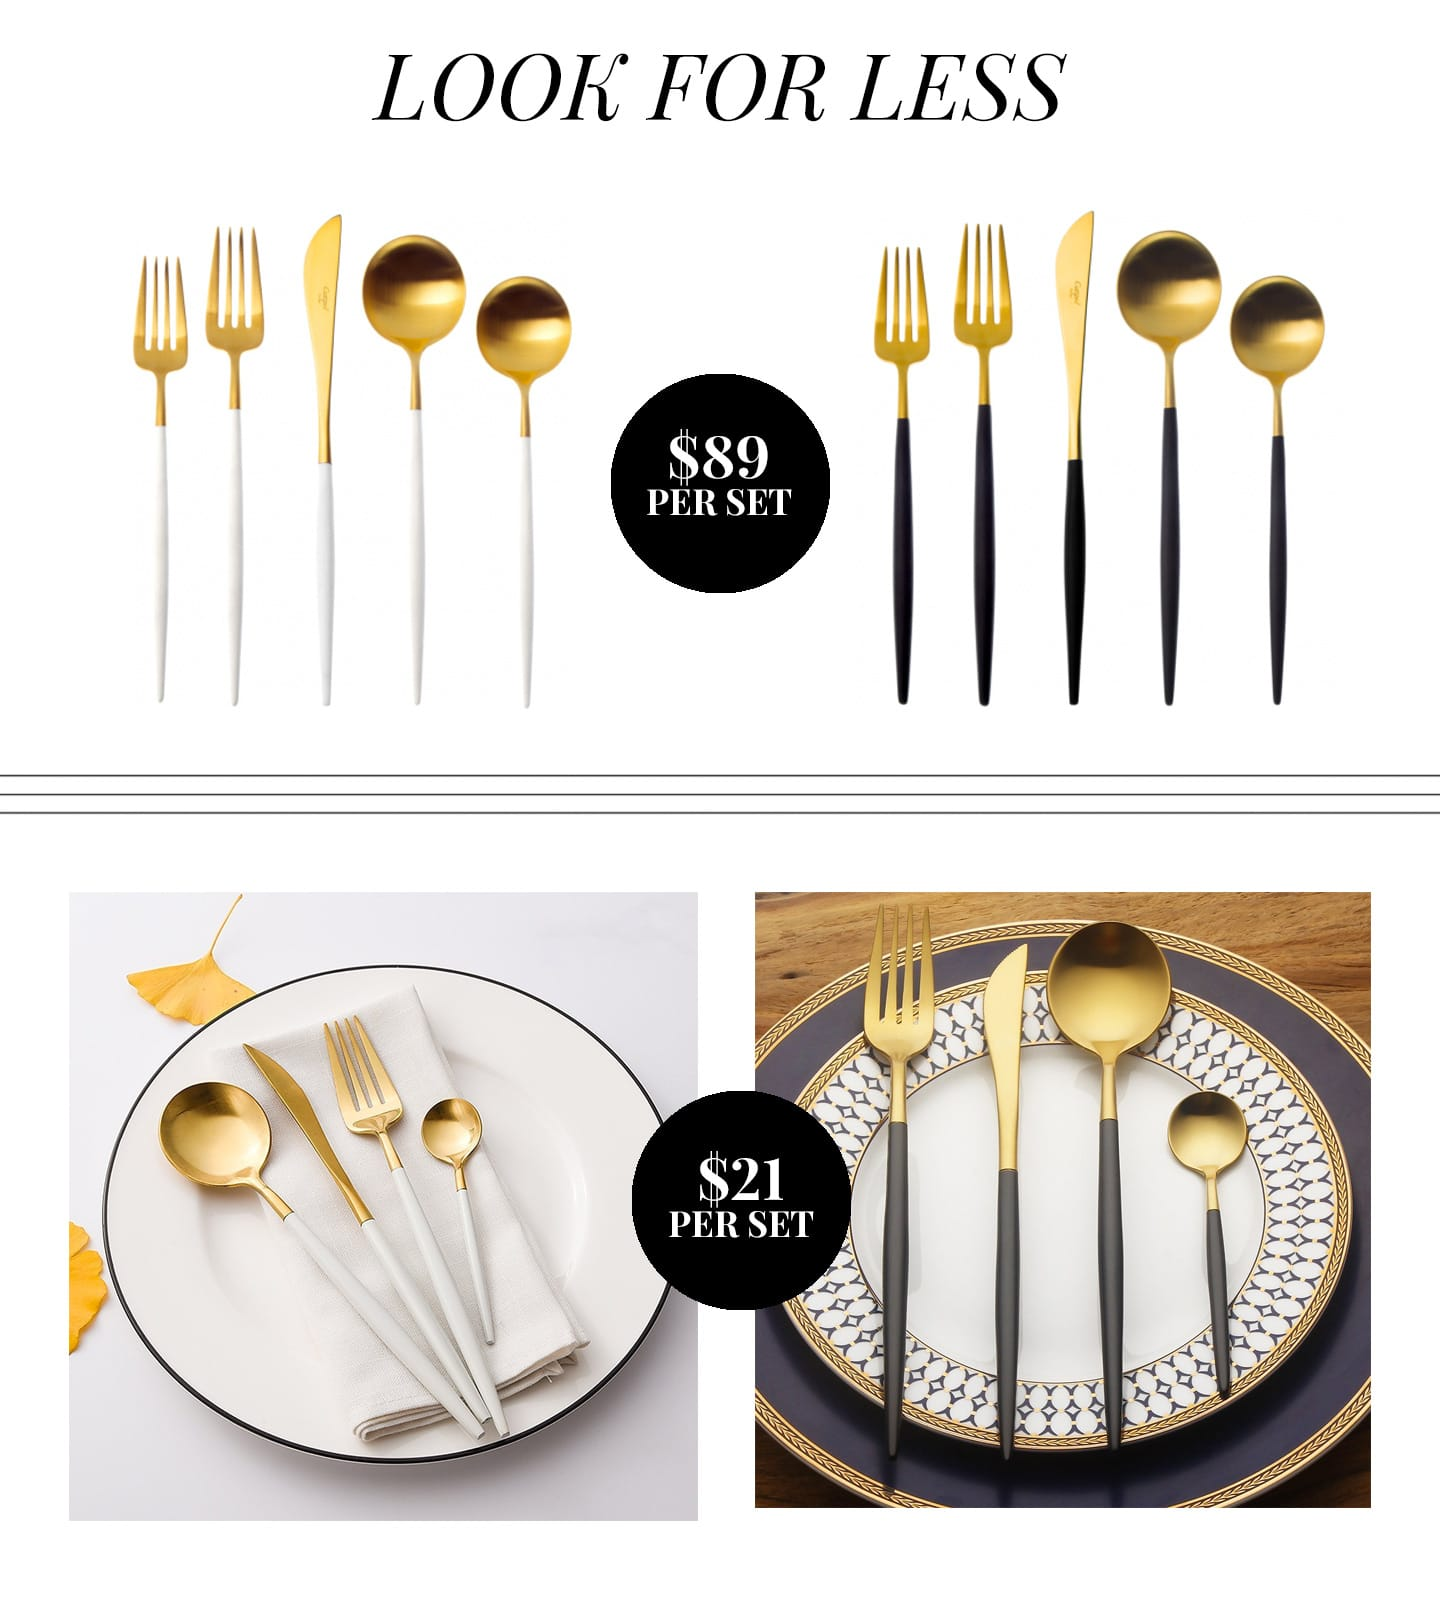 The Look for Less | Gold/White and Gold/Black Flatware